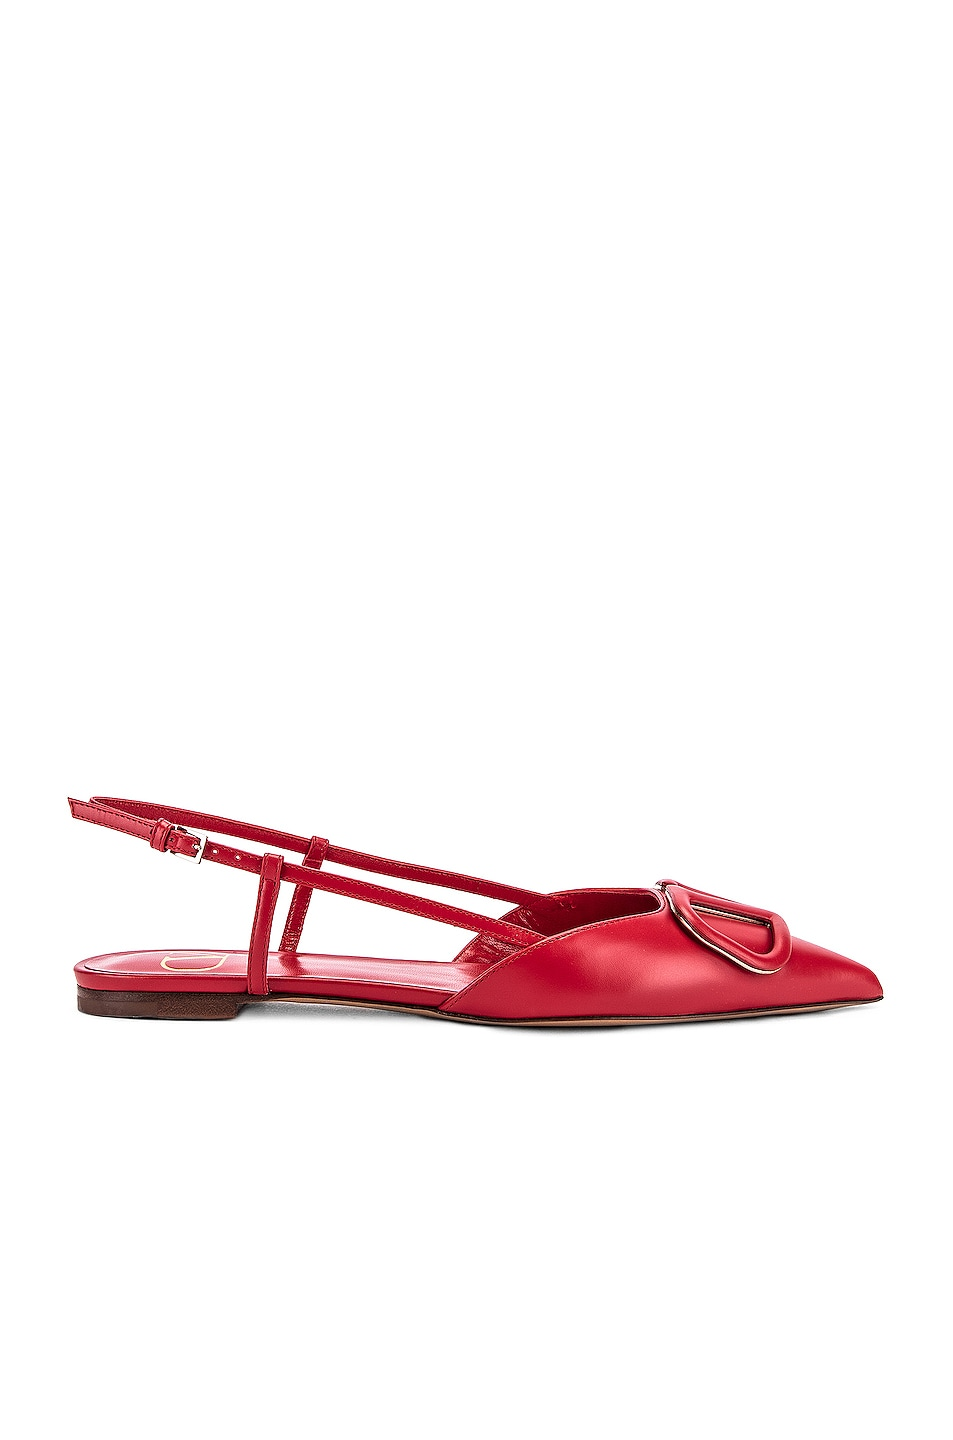 Image 2 of Valentino VLogo Ballerina Flats in Red